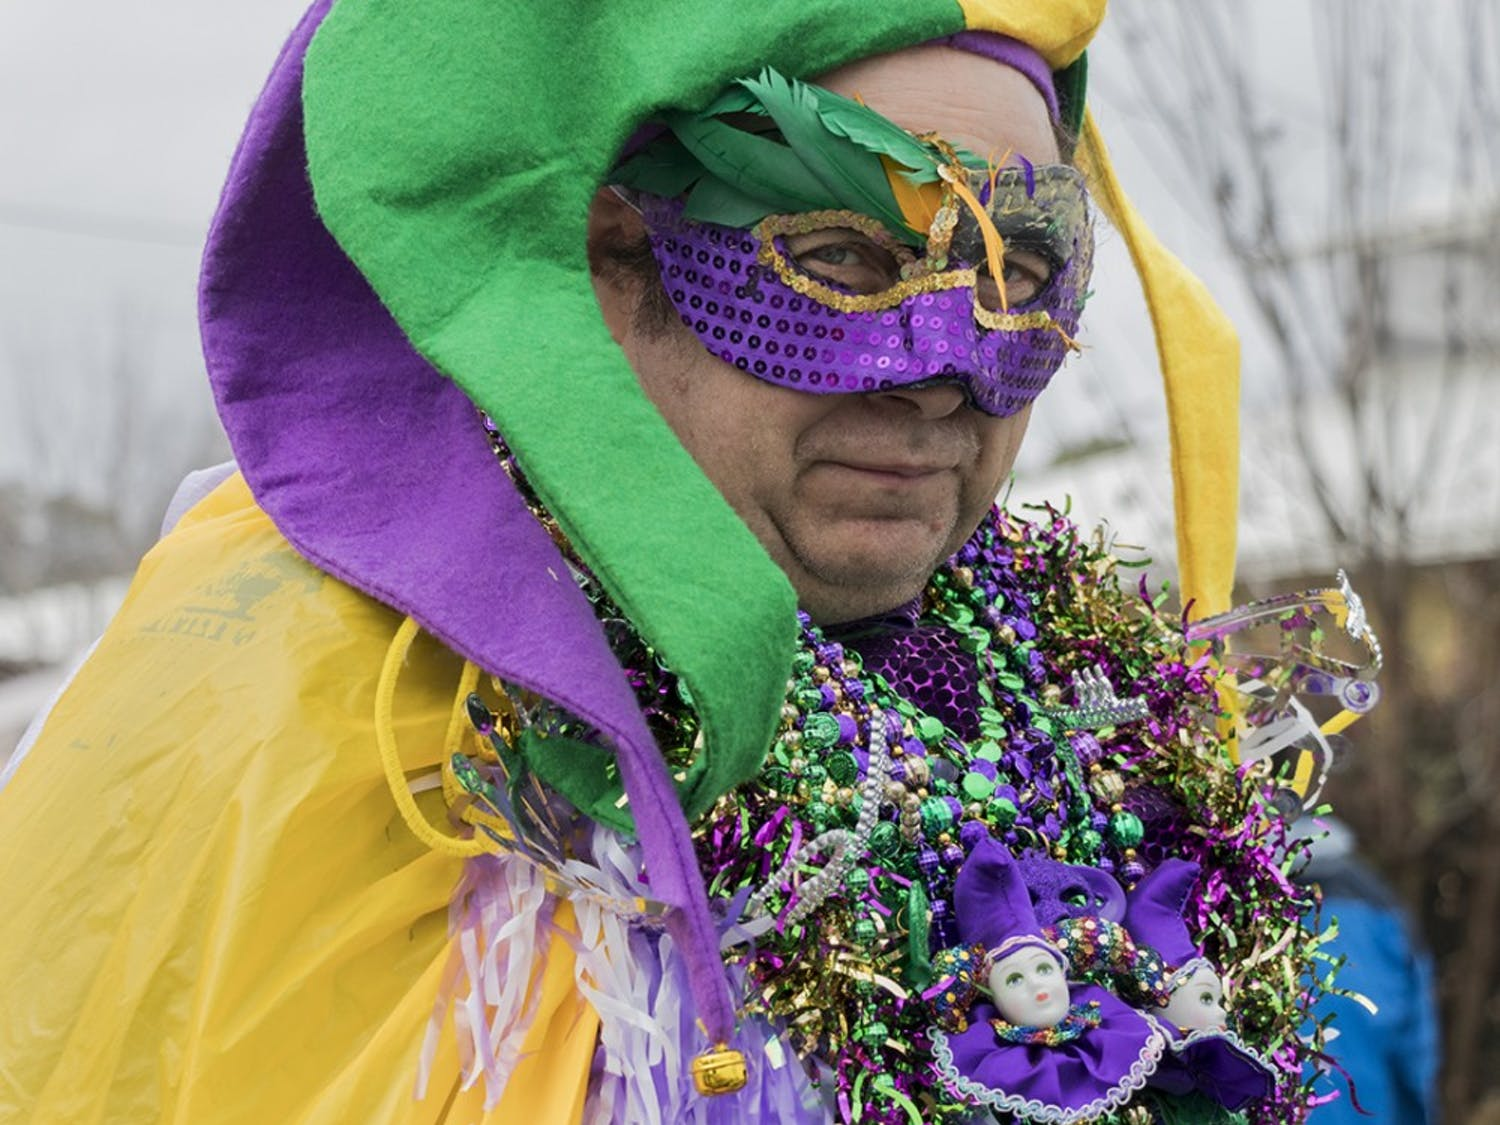 A festivalgoer dresses up for the annual Mardi Gras Columbia in 2018. The festival was hosted and organized by The Krewe de Columbi Ya Ya.